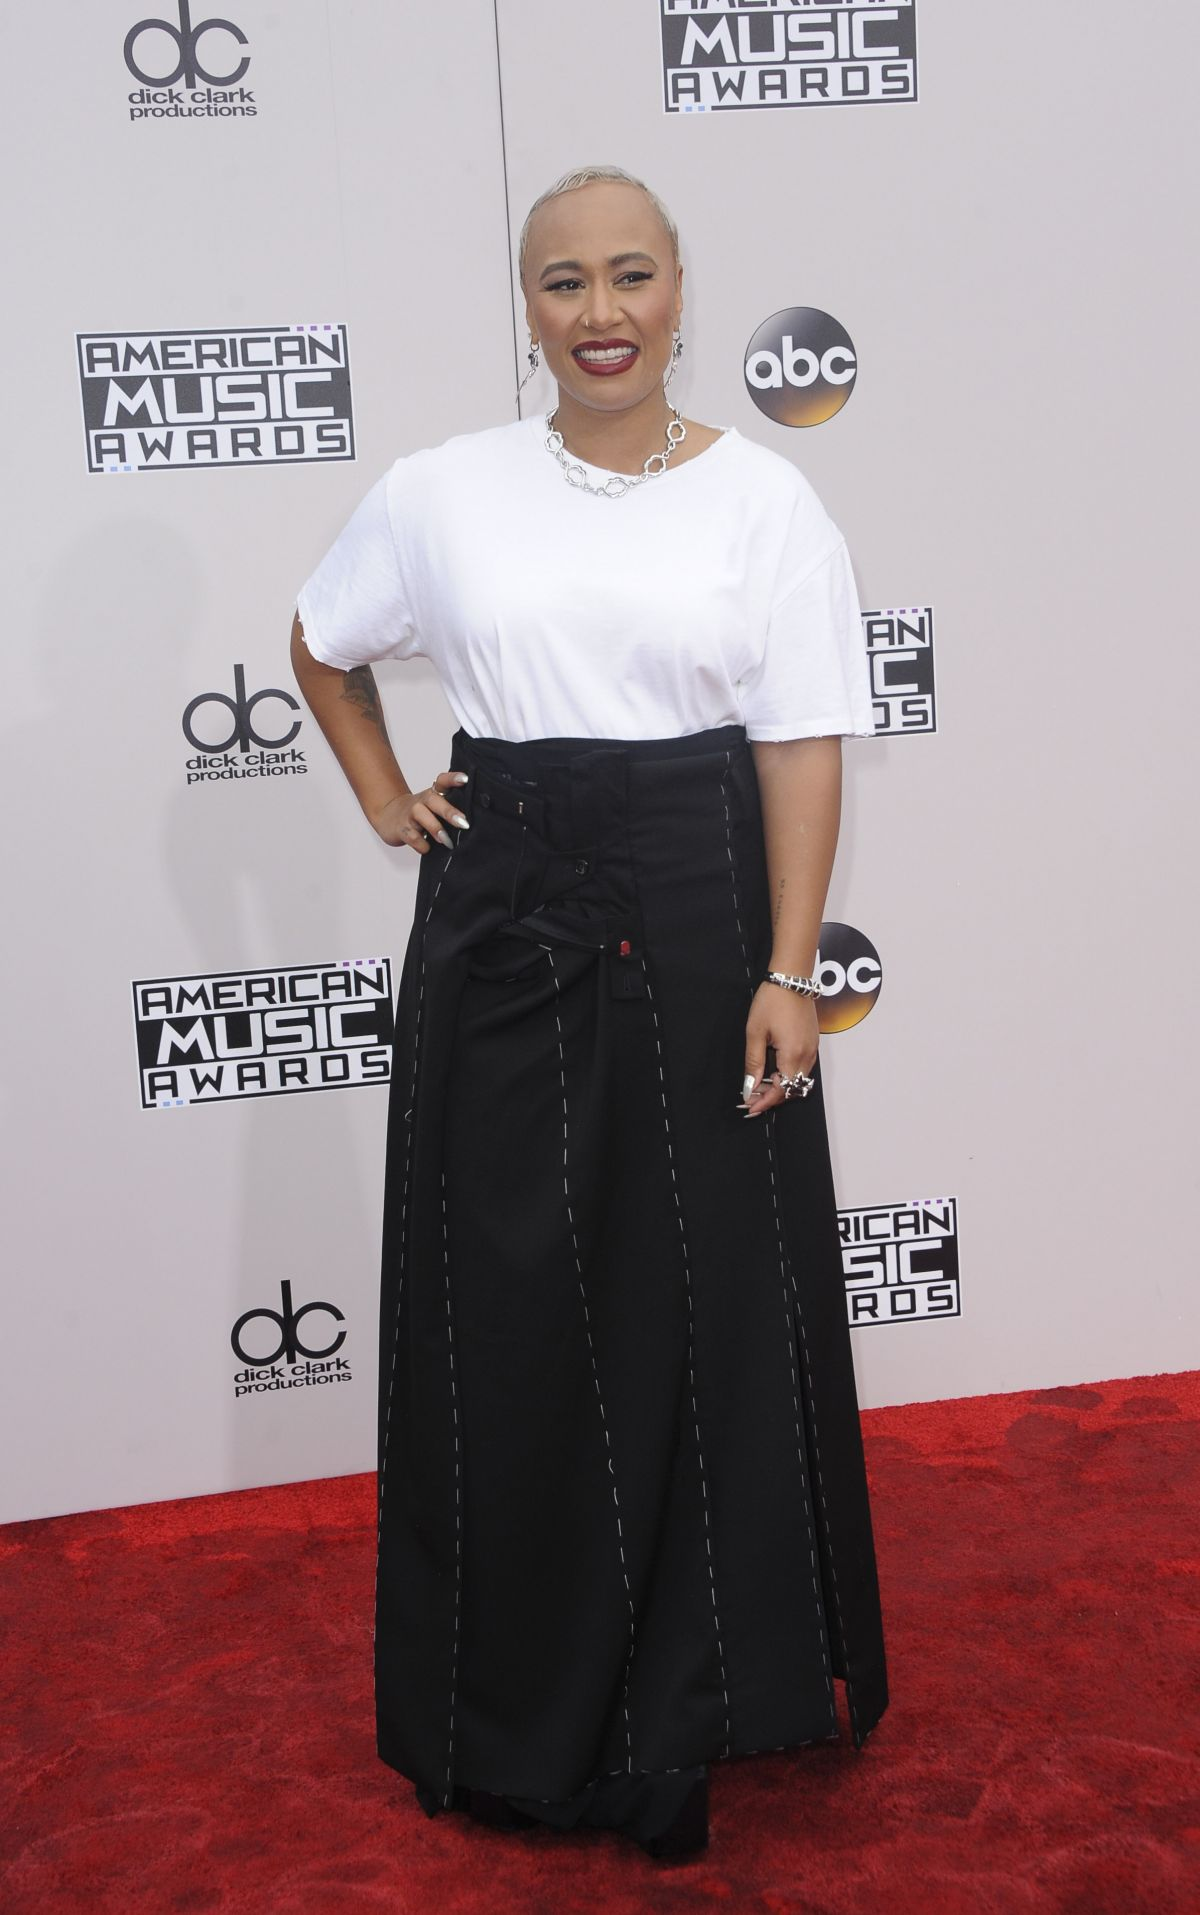 EMELI SANDE at 2016 American Music Awards at The Microsoft Theater in Los Angeles 11/20/2016